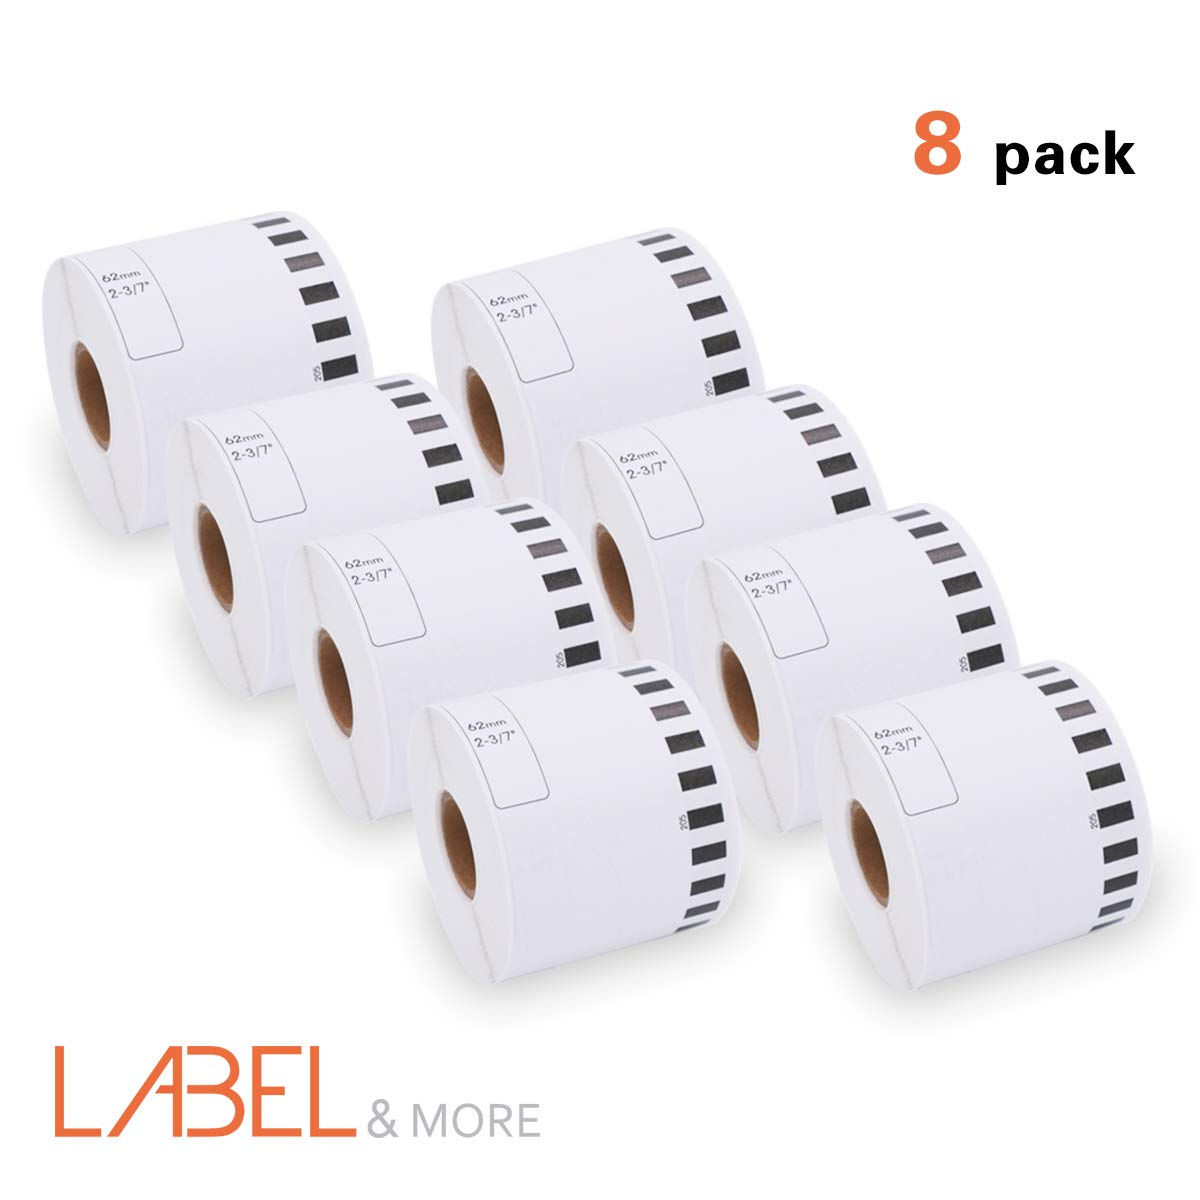 DK 1202 Label Roll Brother Die-Cut Shipping Label Compatible Standard Address Shipping Labels 2-3/7 x 4 for Brother P-Touch QL-Series QL-700 ql-710W QL-720NW QL-570 QL-810W [12 Rolls, 3600Labels] BK